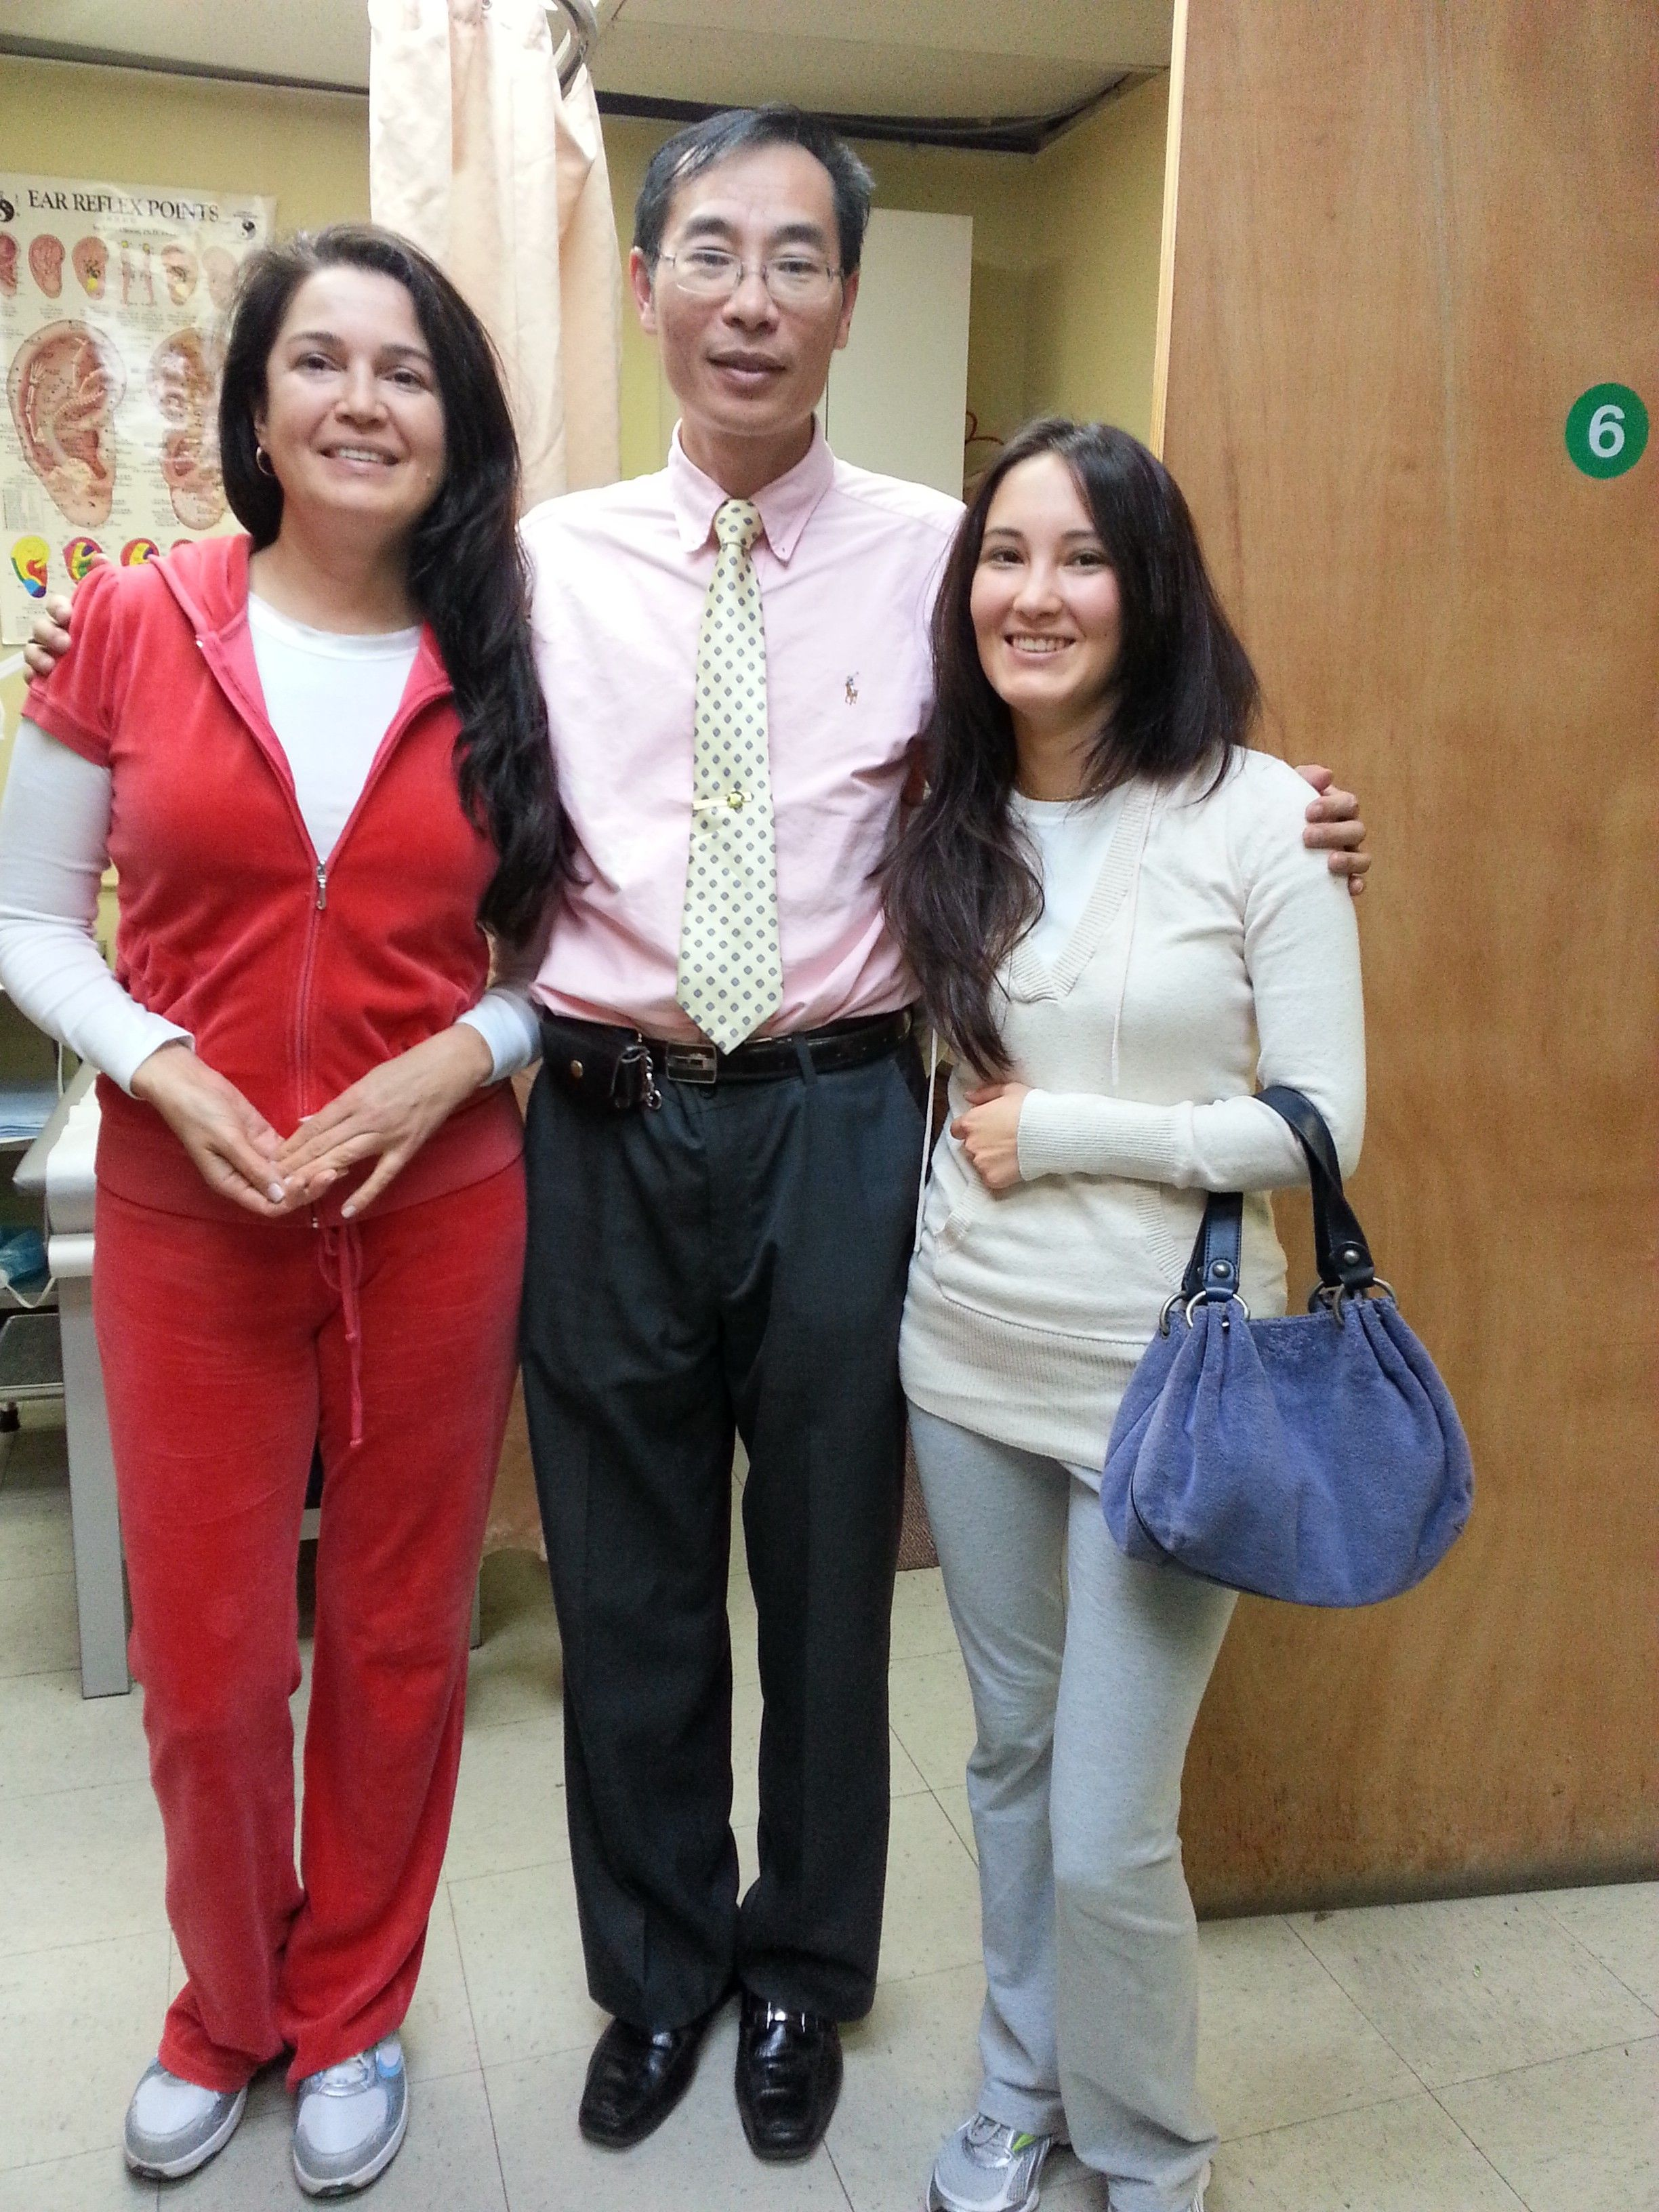 Frank zhao and his acupuncture treatment patients | Our